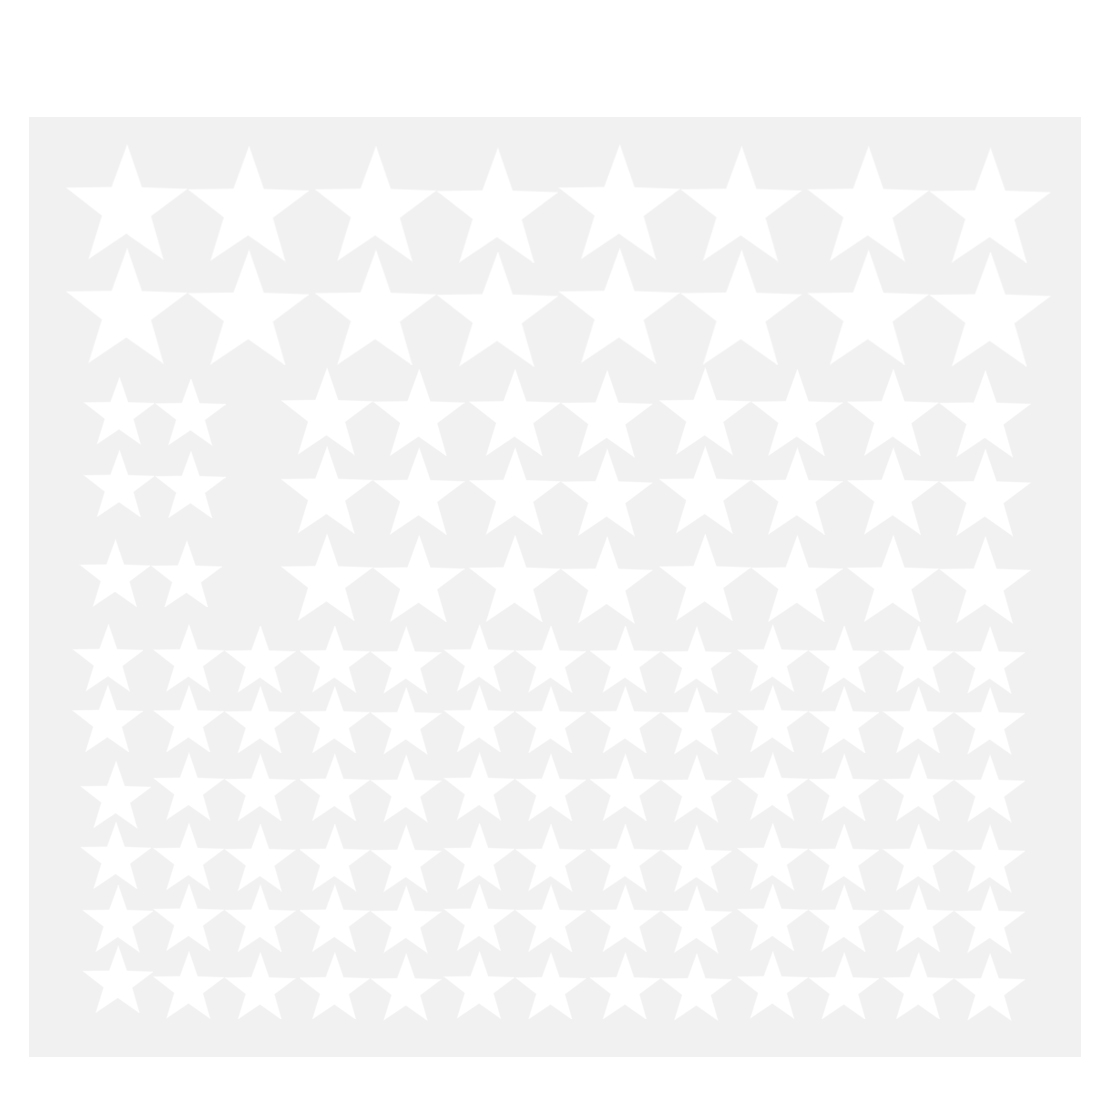 110pcs Star Pattern Wall Stickers Removable Art Decal for Bedroom White